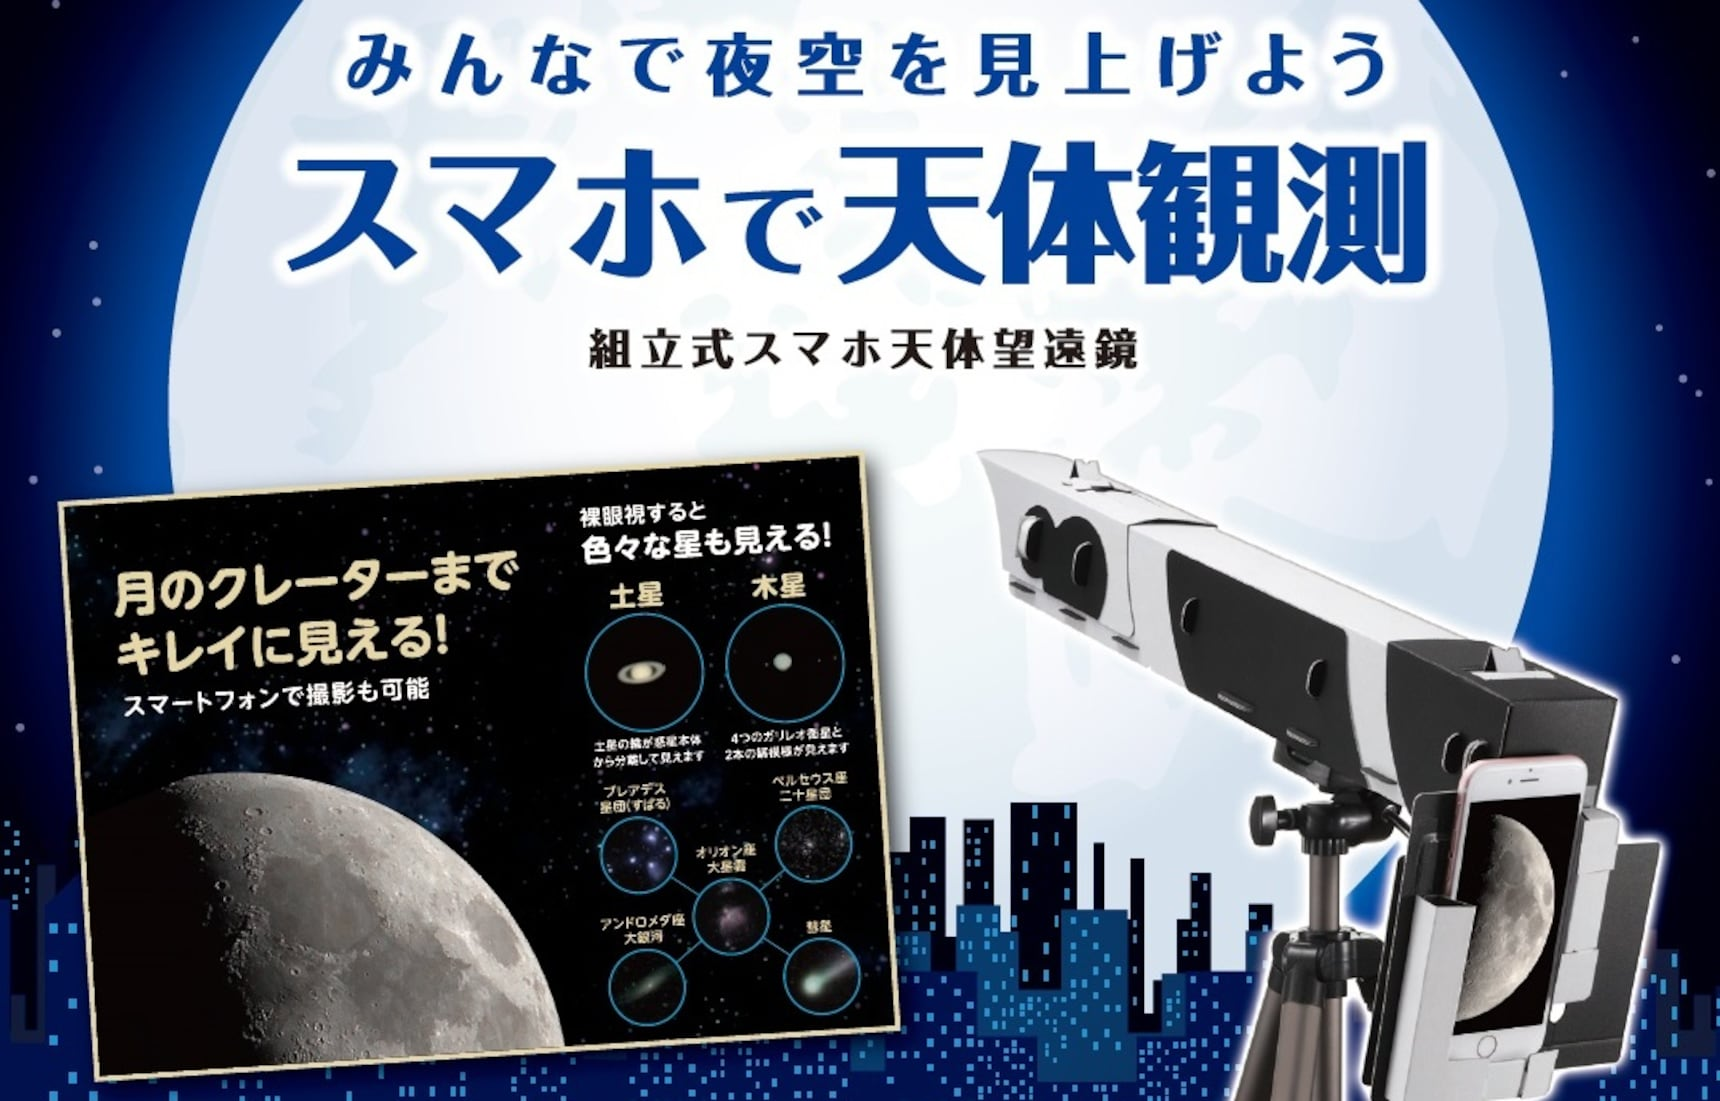 Turn Your Smartphone into a Telescope!